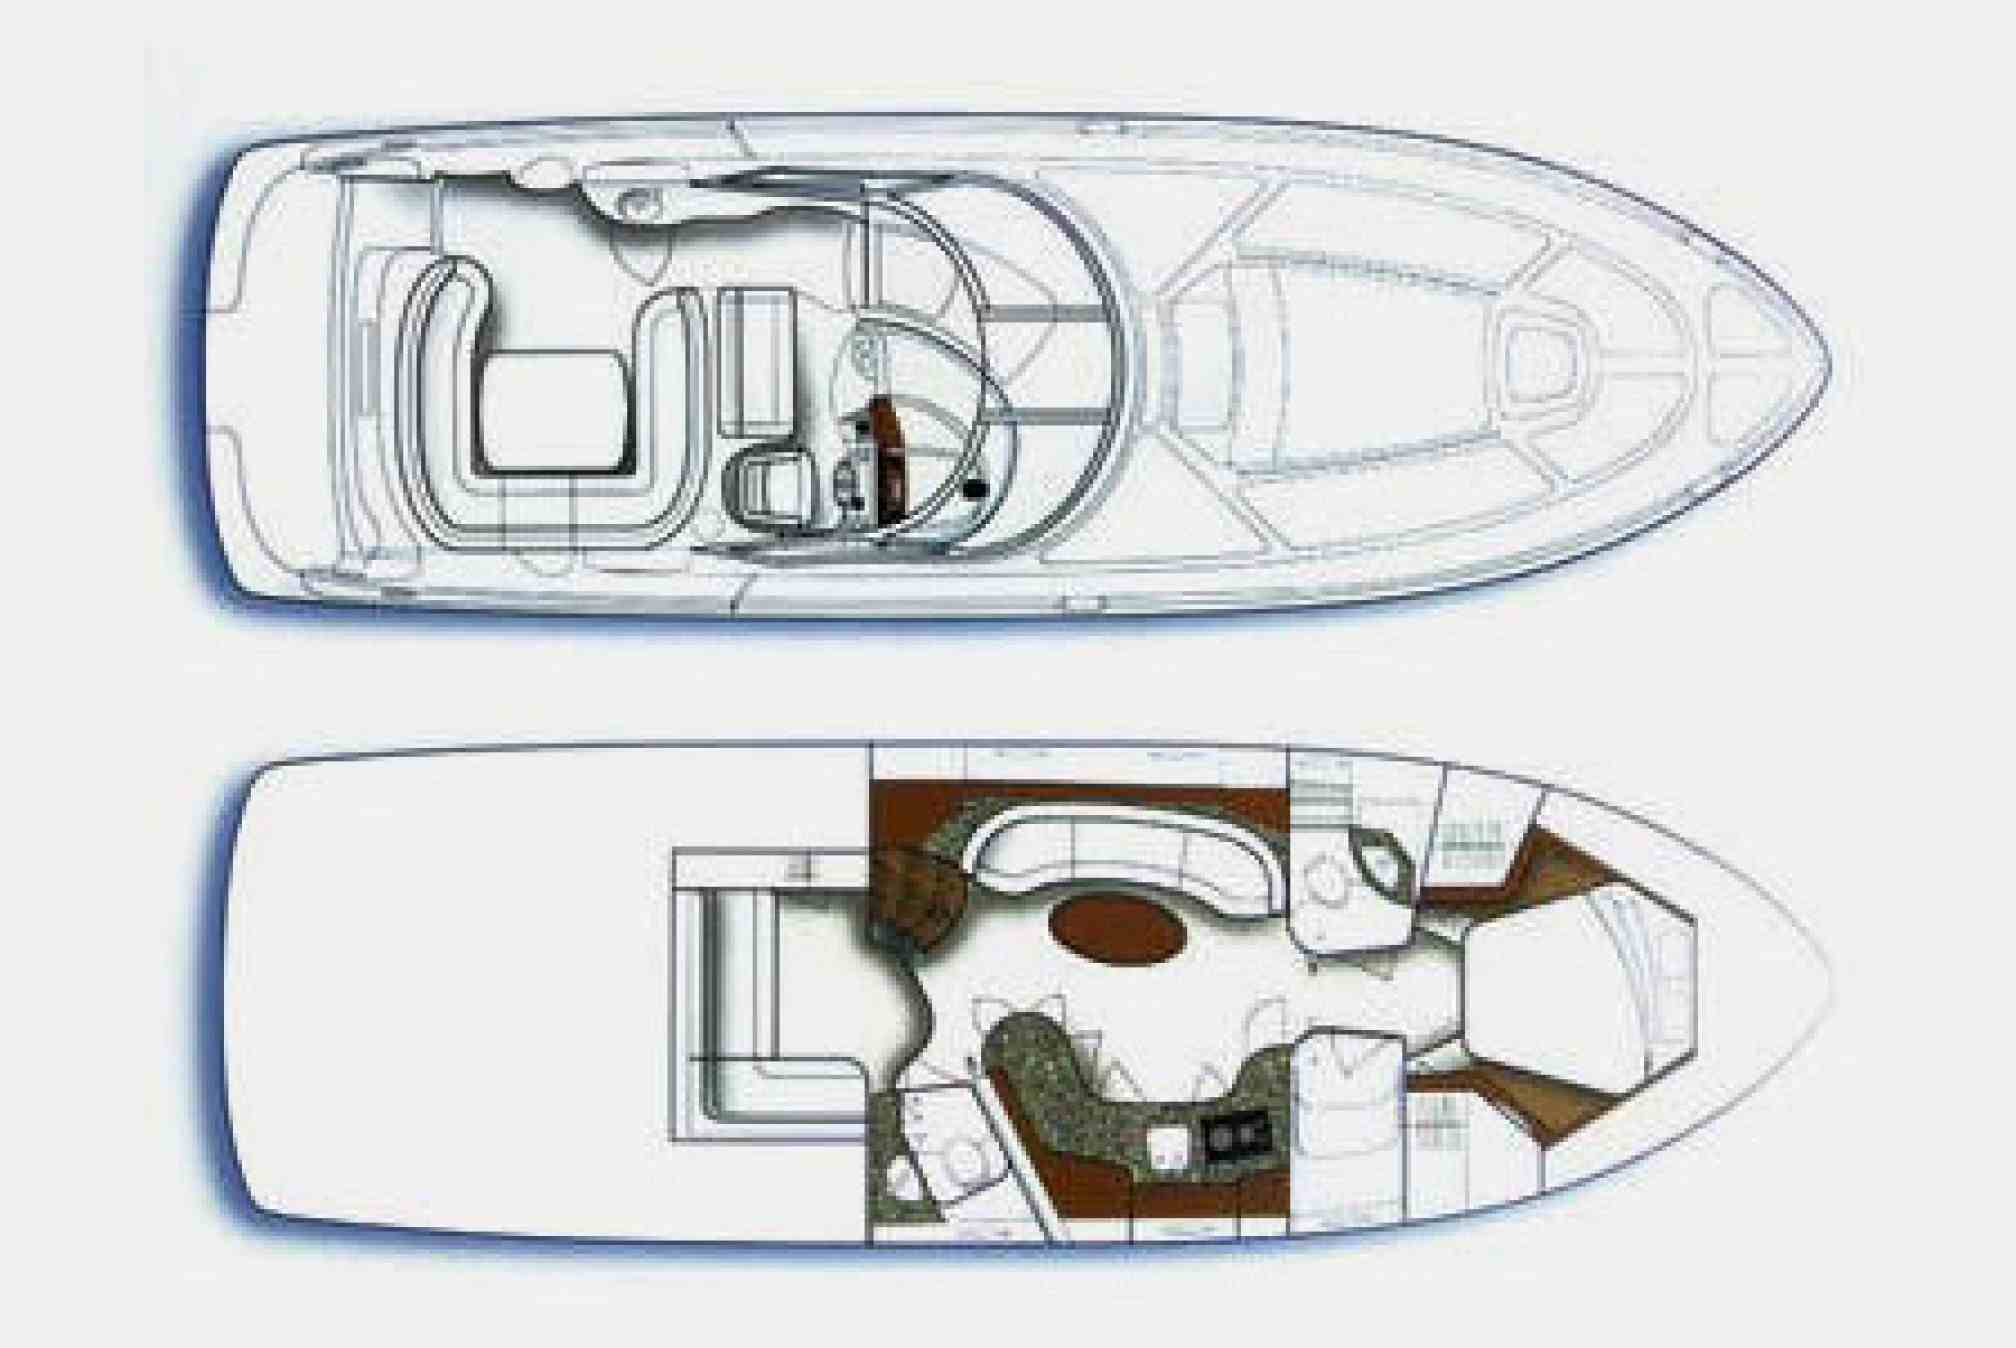 Sea Ray 455 motorboat charter layout